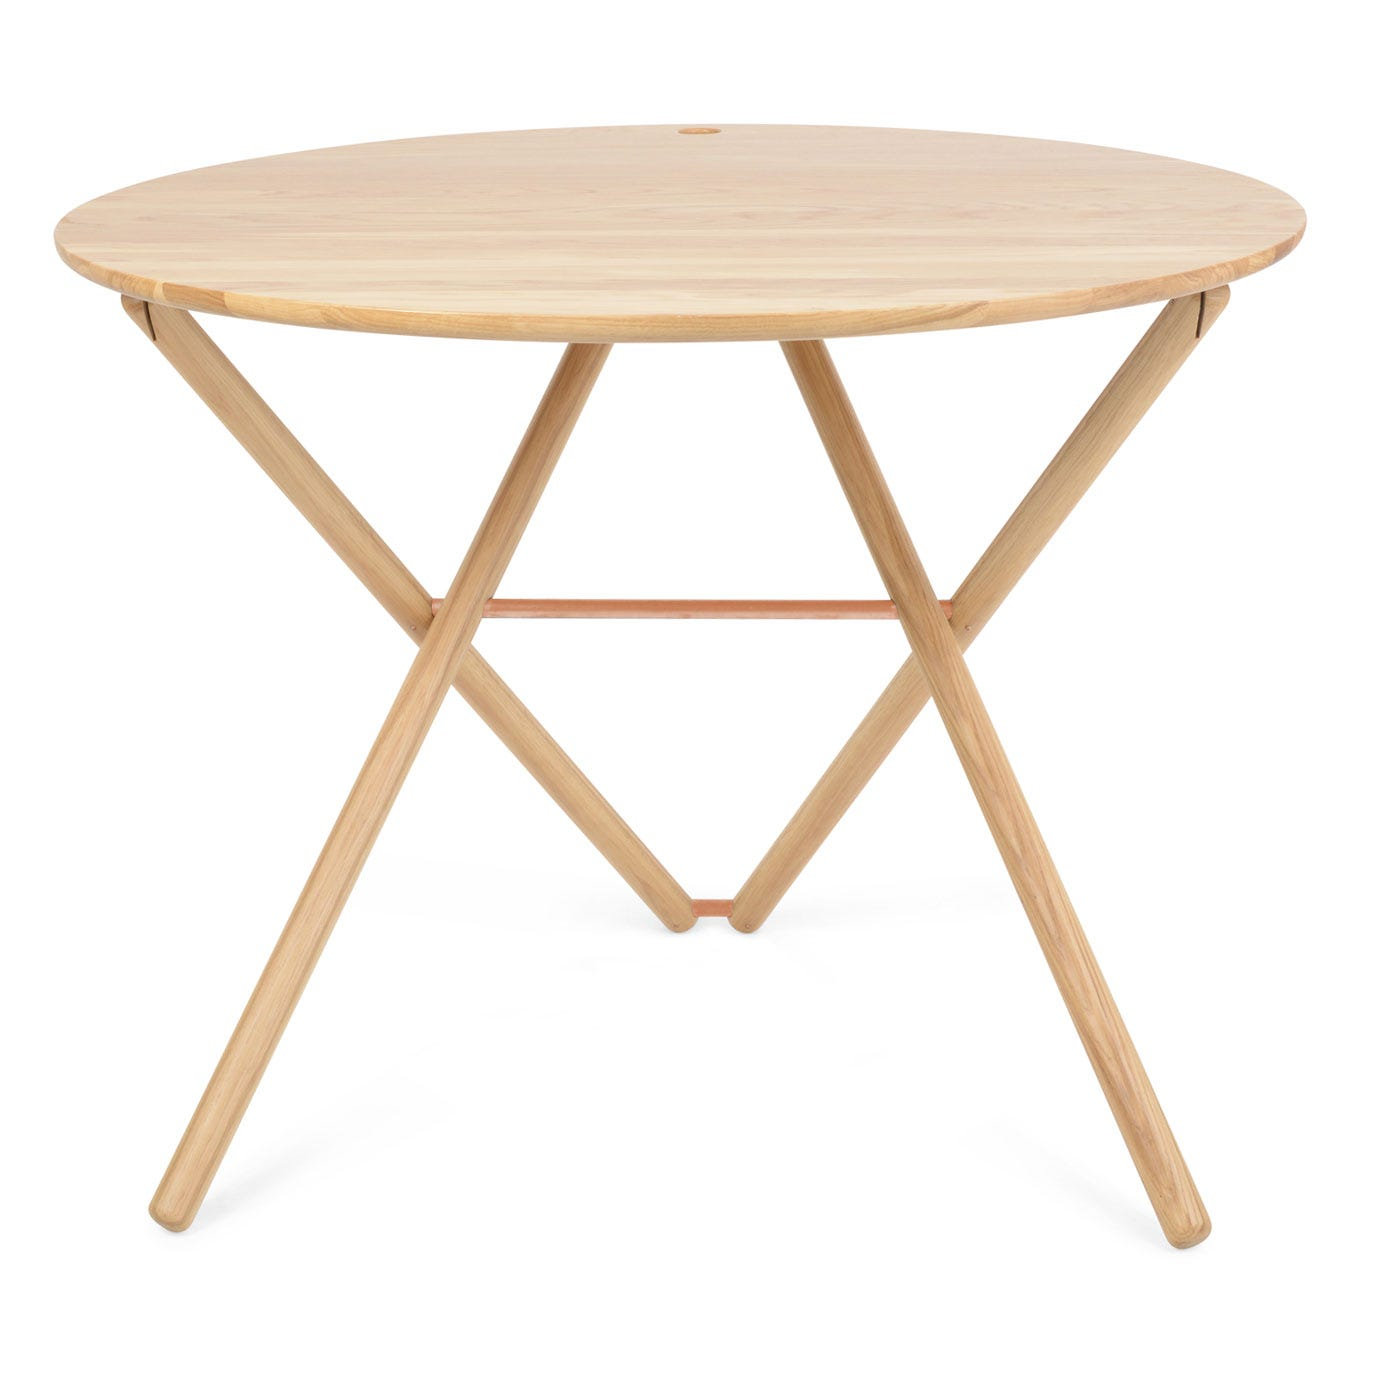 oak dining table and chairs john lewis images